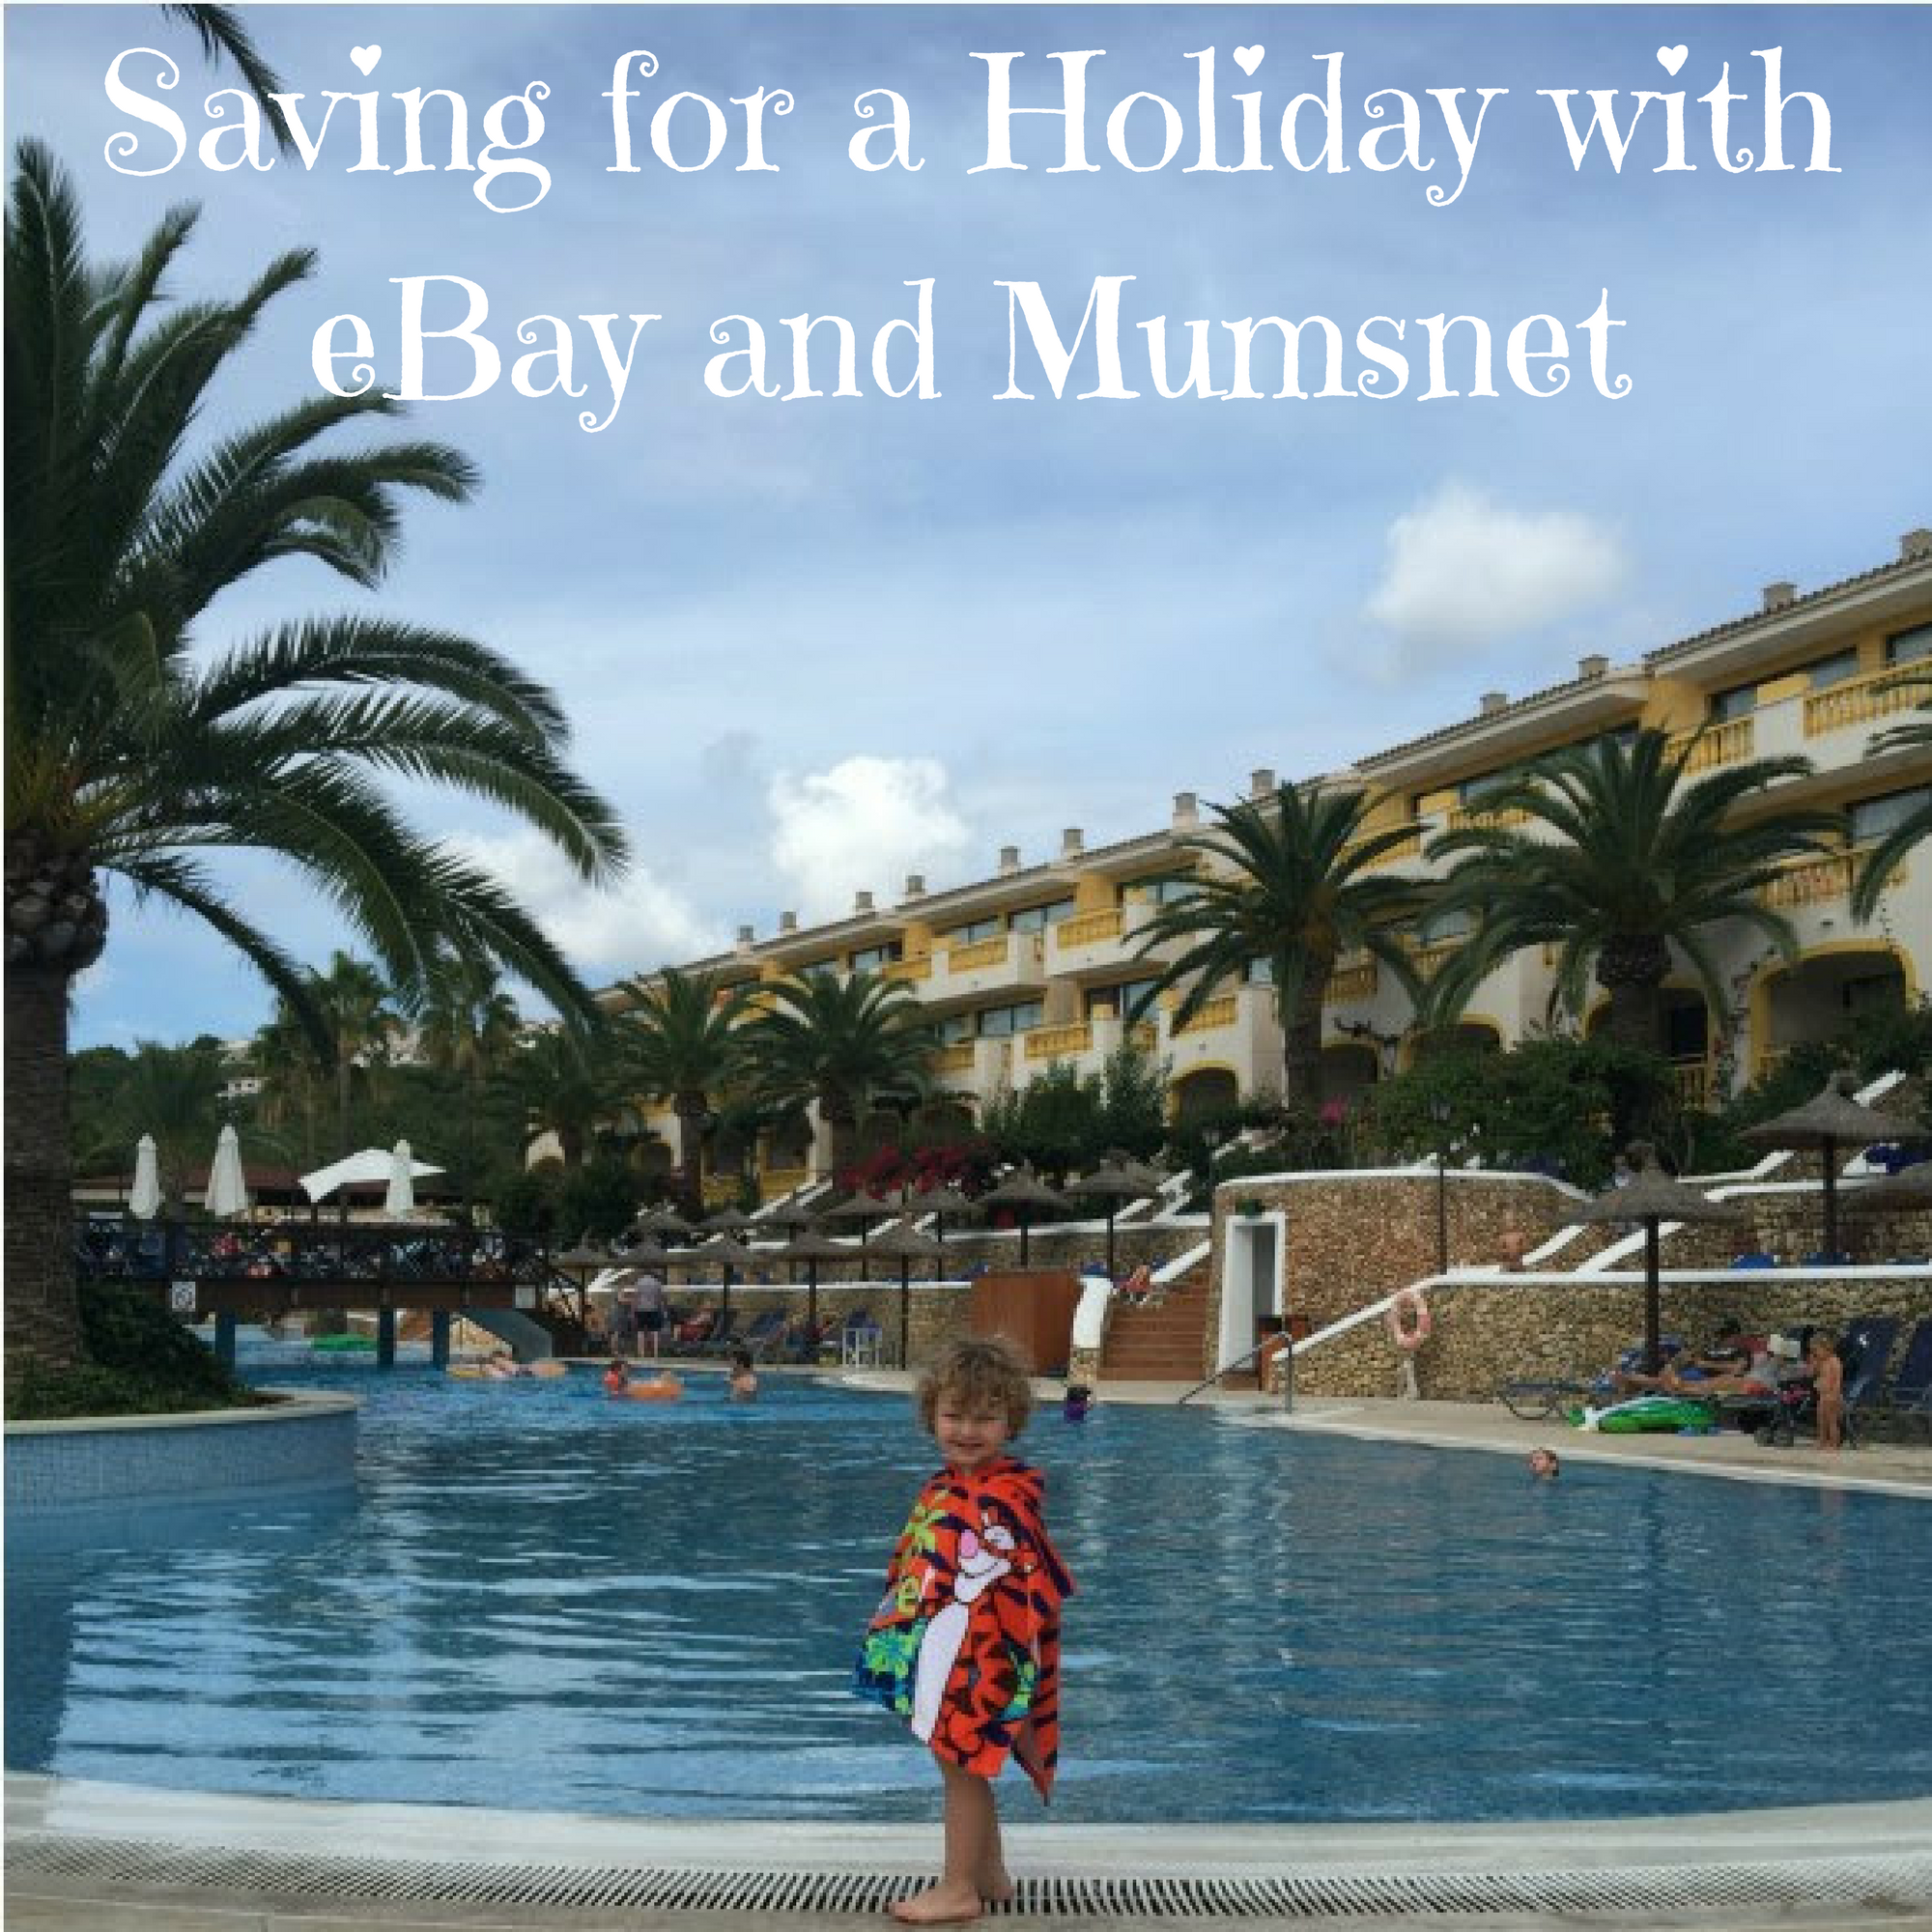 Saving for a Holiday with eBay and Mumsnet